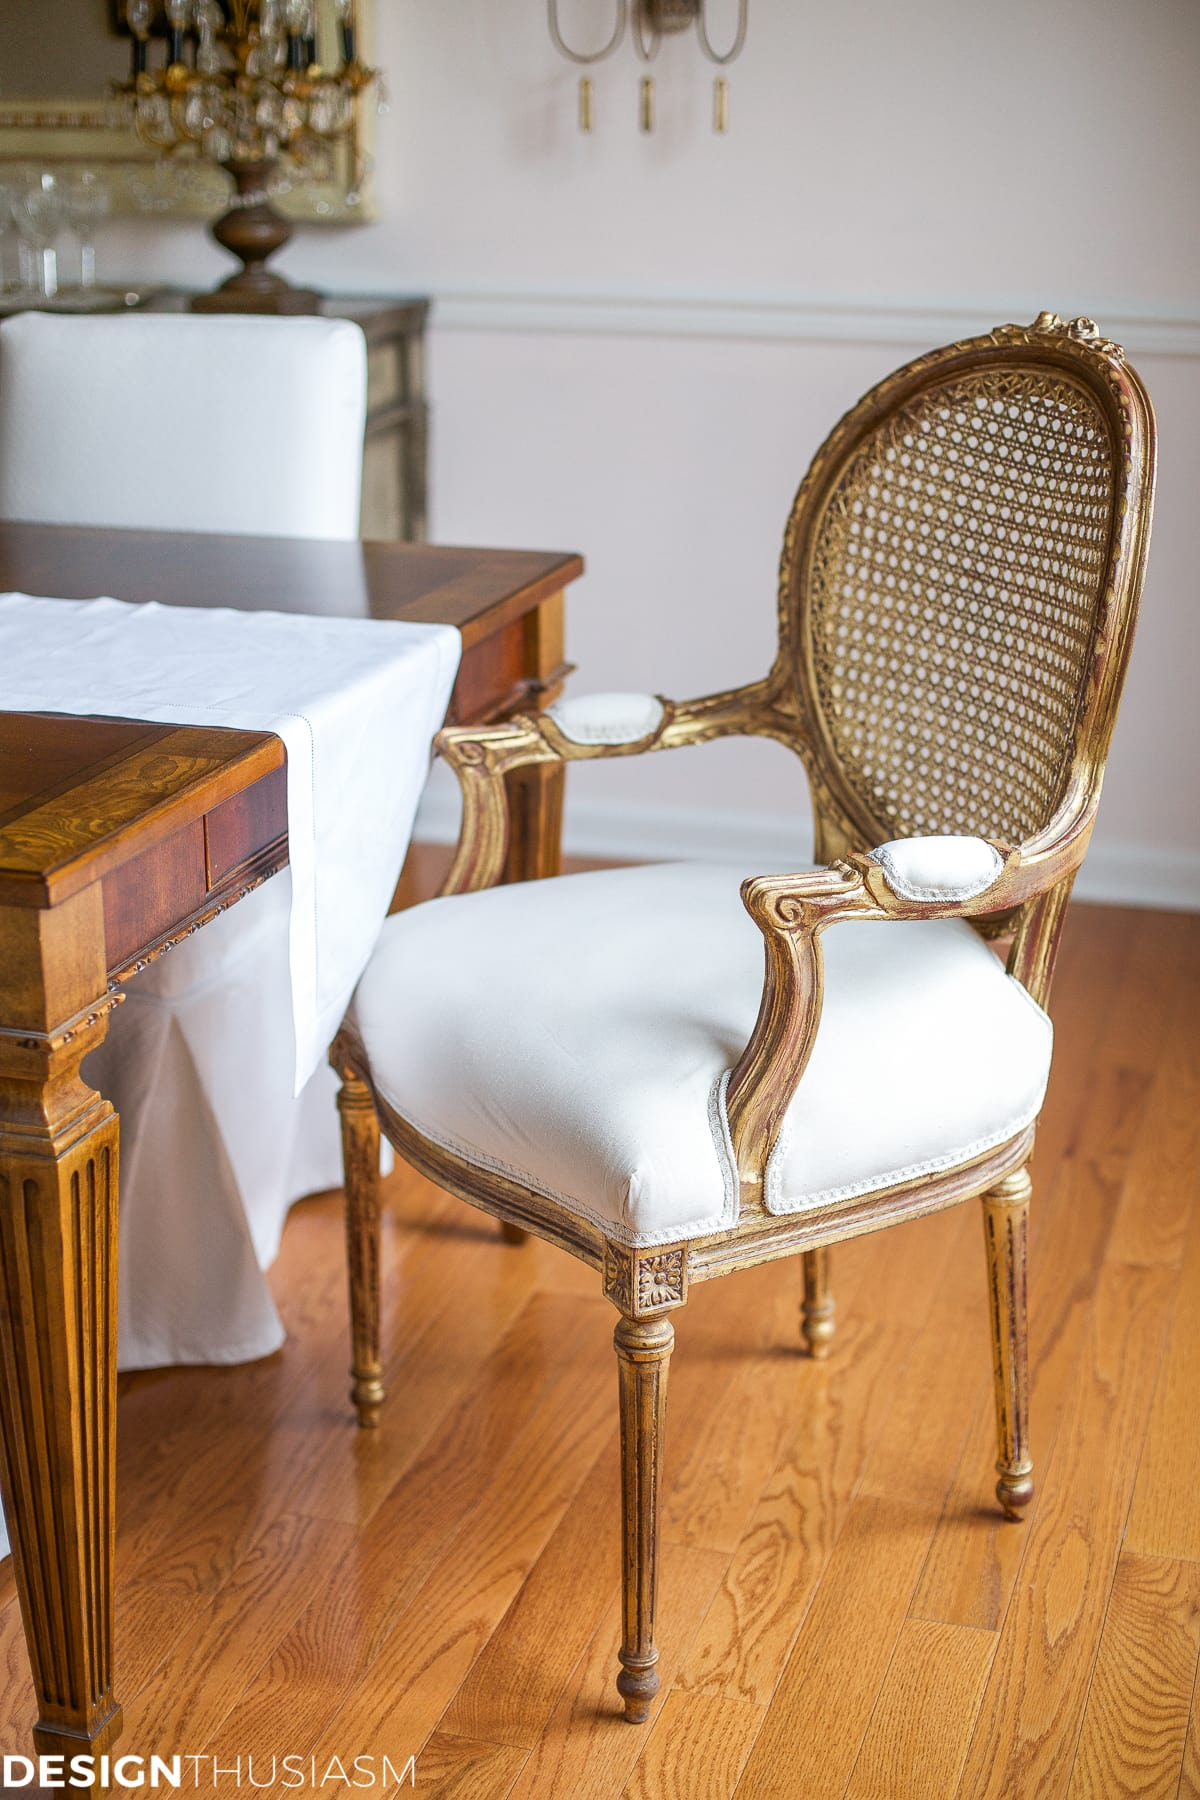 Dining Room Accessories | 3 Updates That Make a Huge Difference - designthusiasm